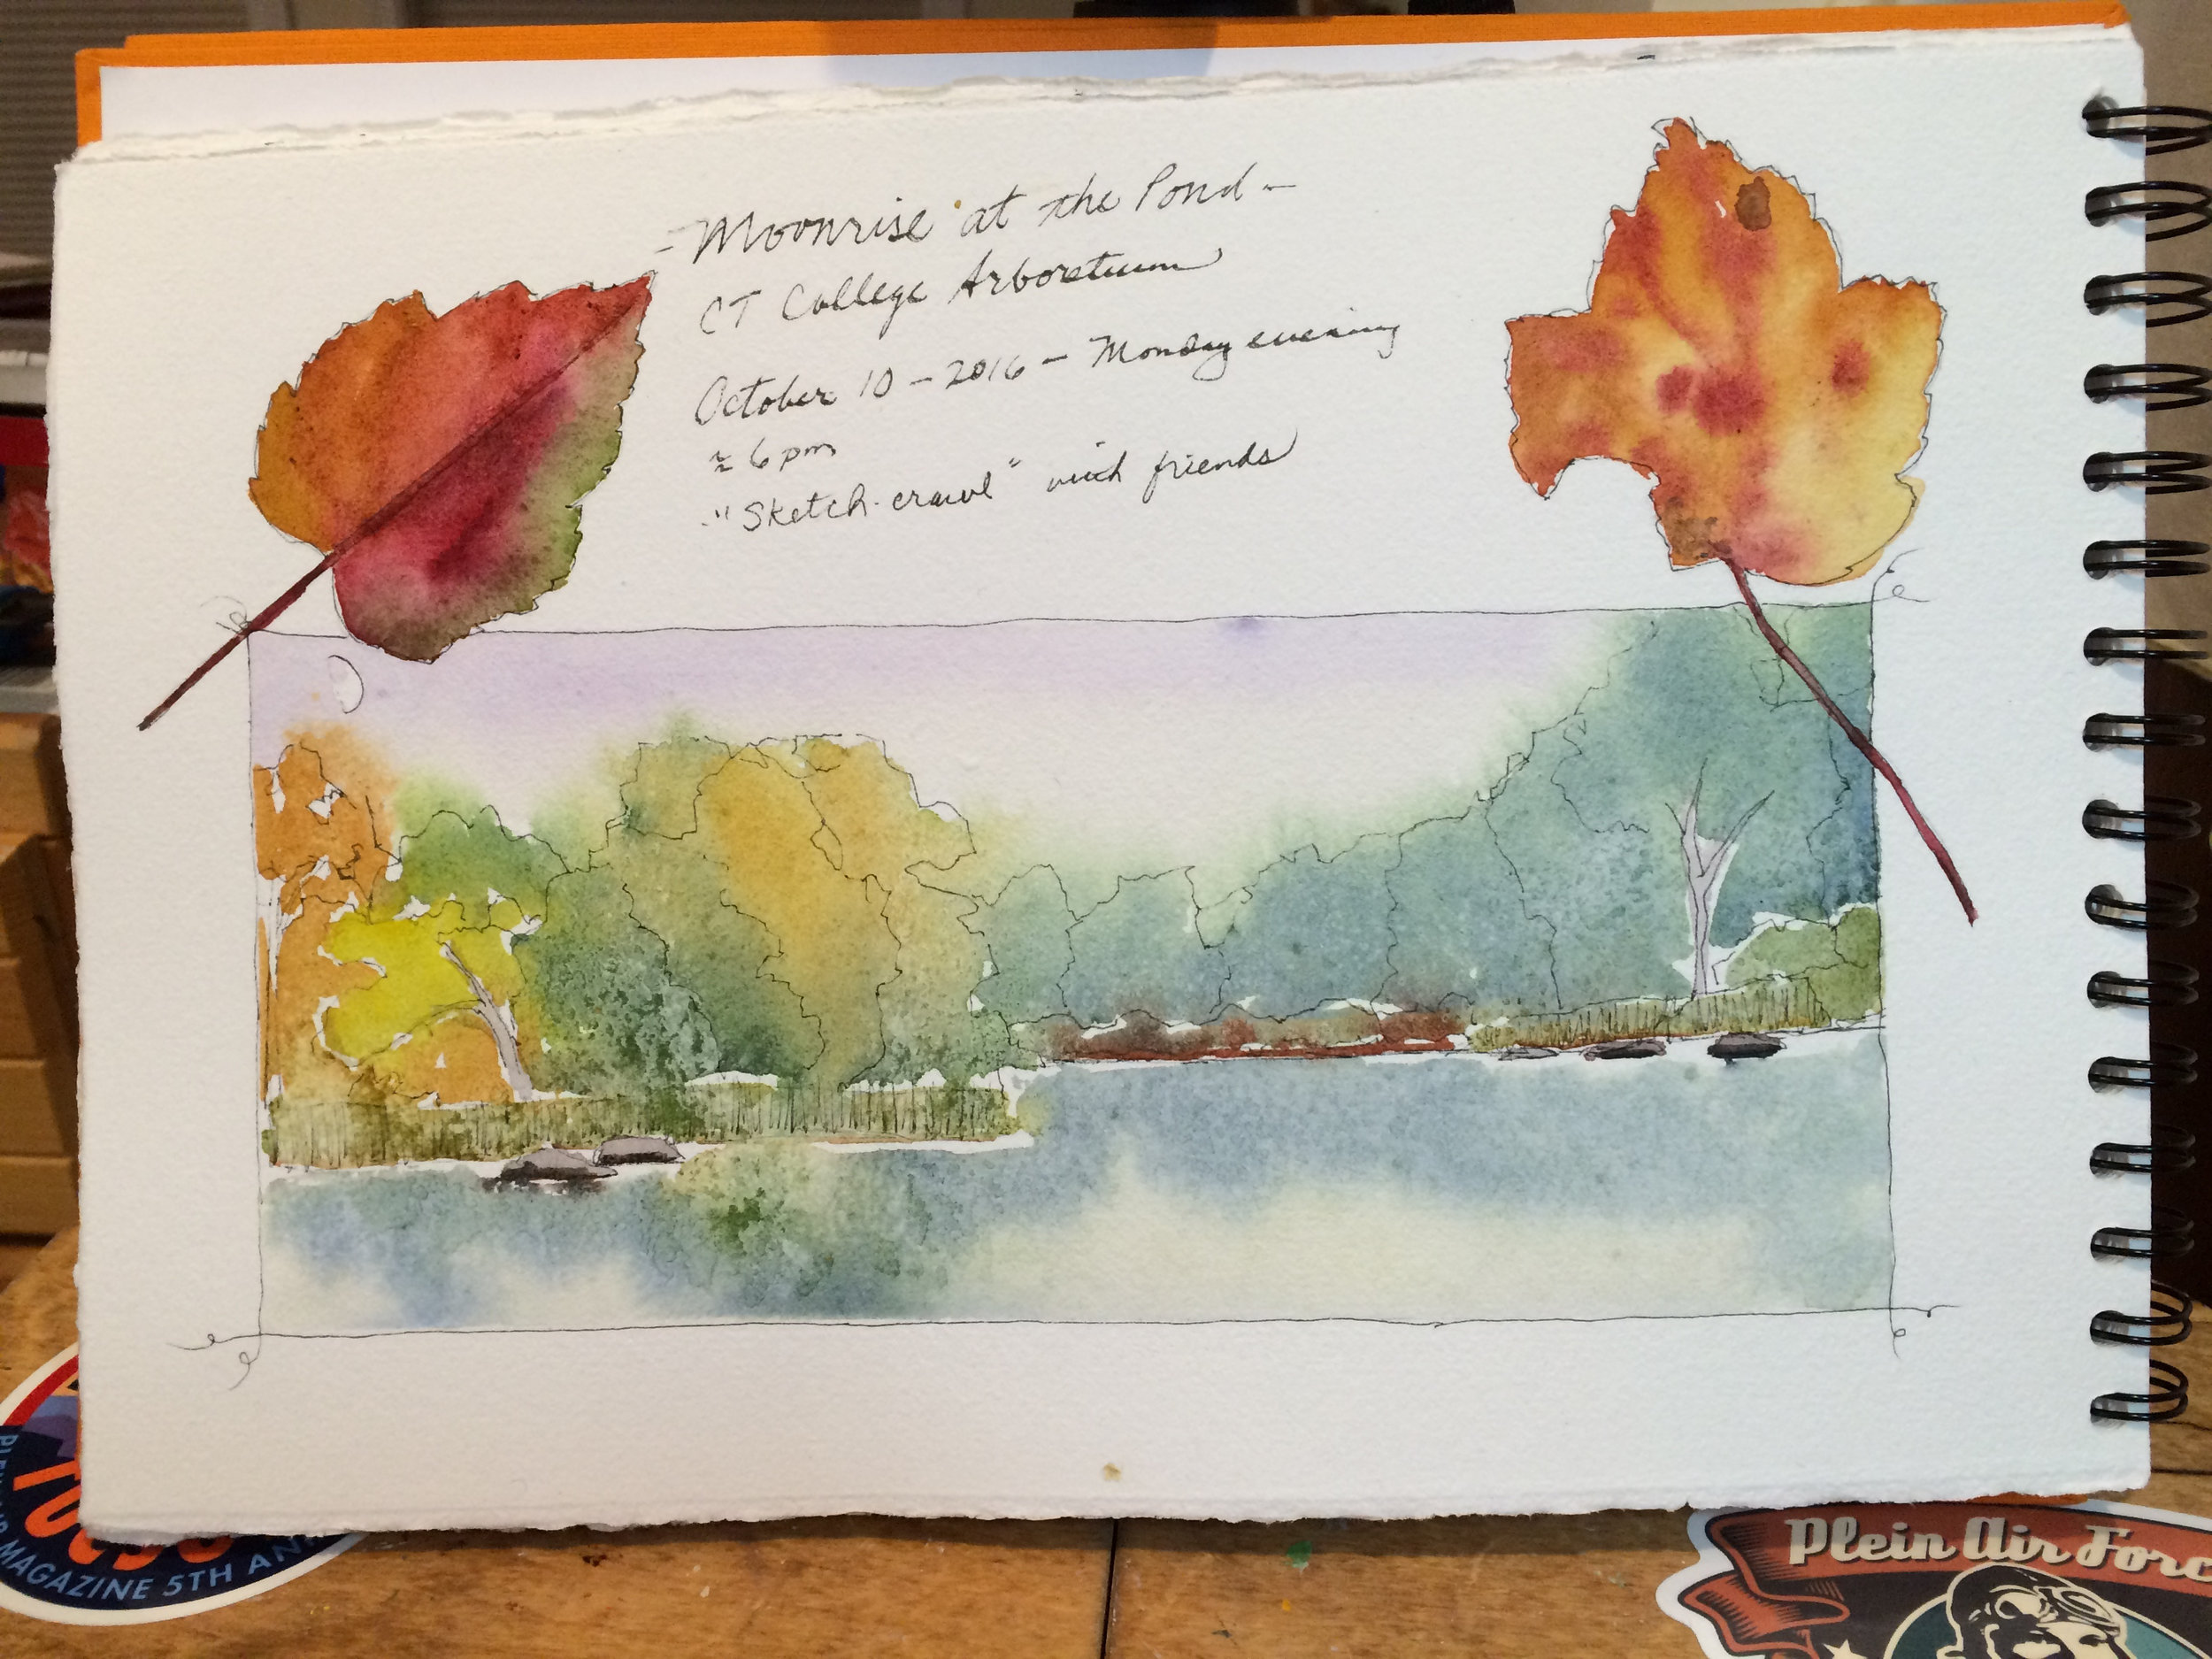 Moonrise at the Pond-Arboretum Sketchcrawl 10-2016.jpg